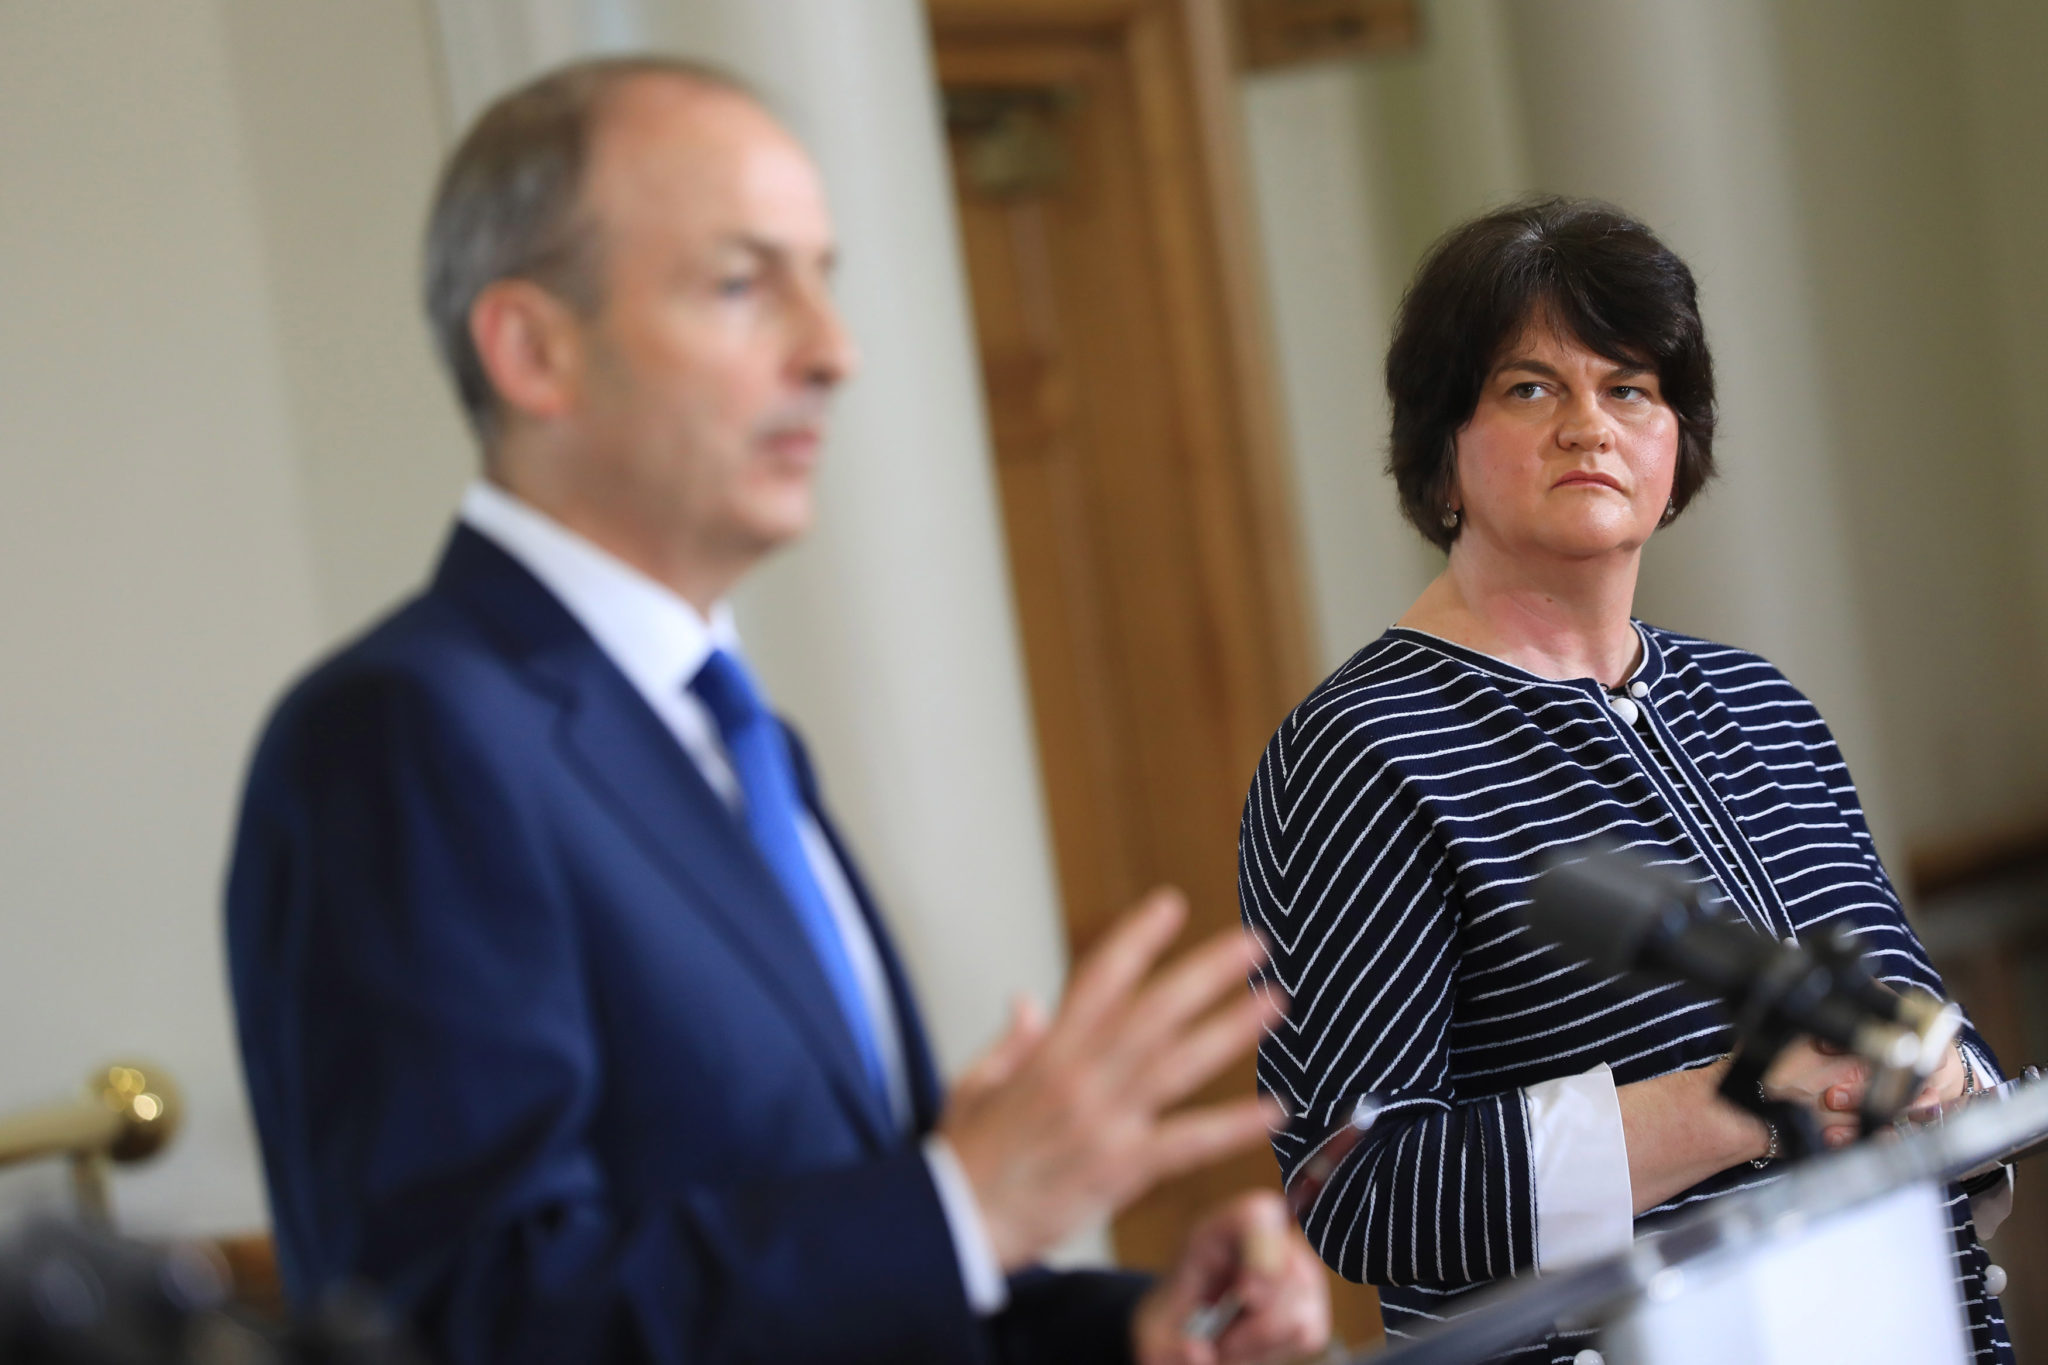 Taoiseach Micheál Martin and Arlene Foster at a press briefing after a North-South Ministerial Council meeting in Dublin Castle in July 2020